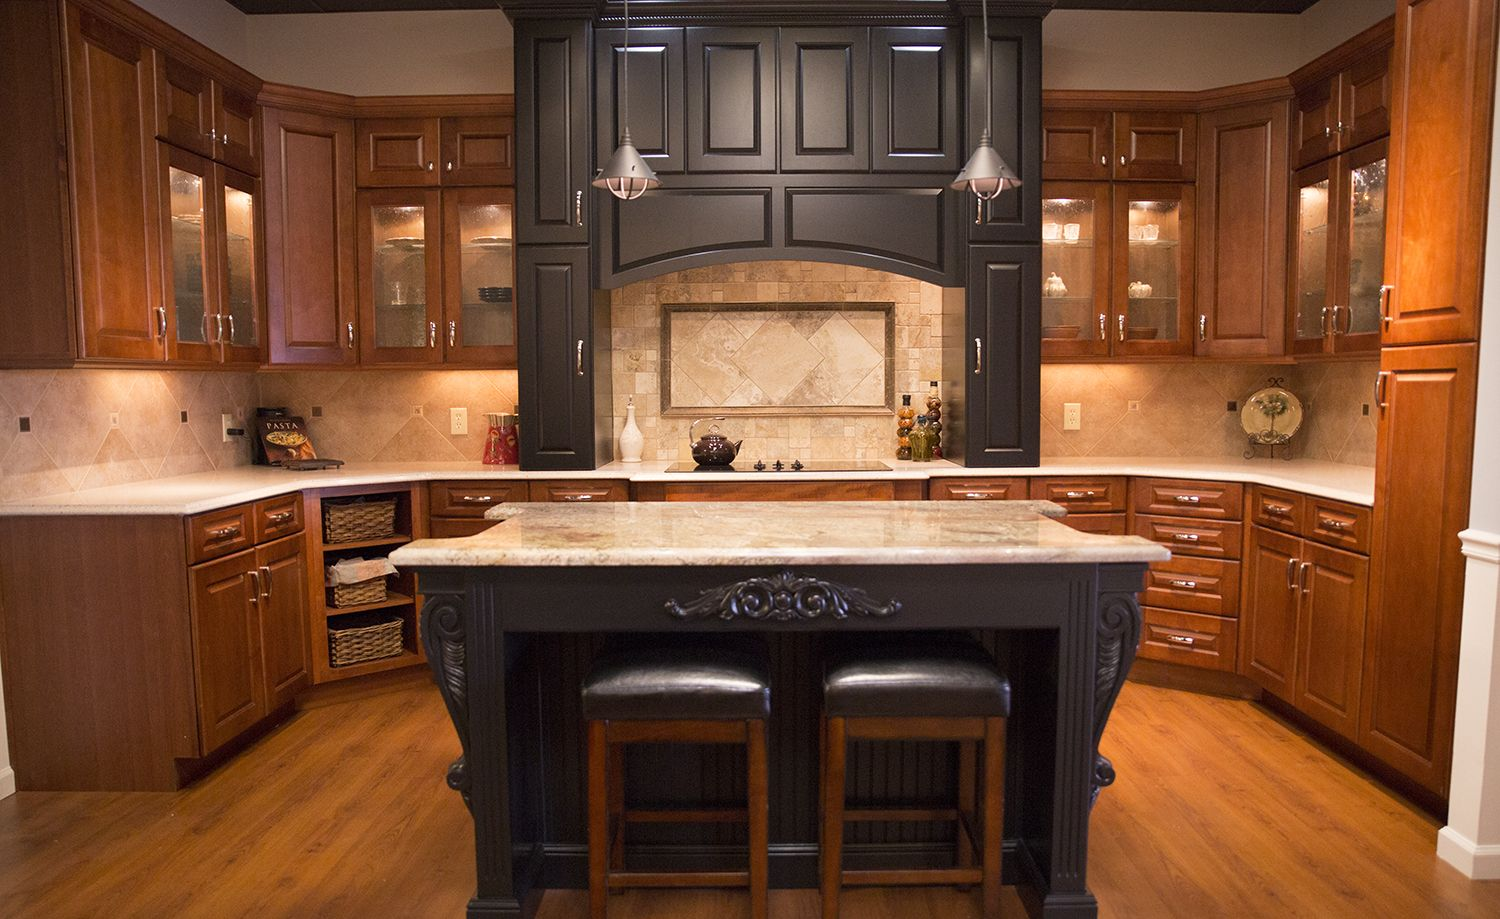 Marsh Traditional Cabinets Kcma Certified Cabinets Eco Friendly And Sustainable Cabinets Kitchen Design Traditional Kitchen Design Traditional Cabinets